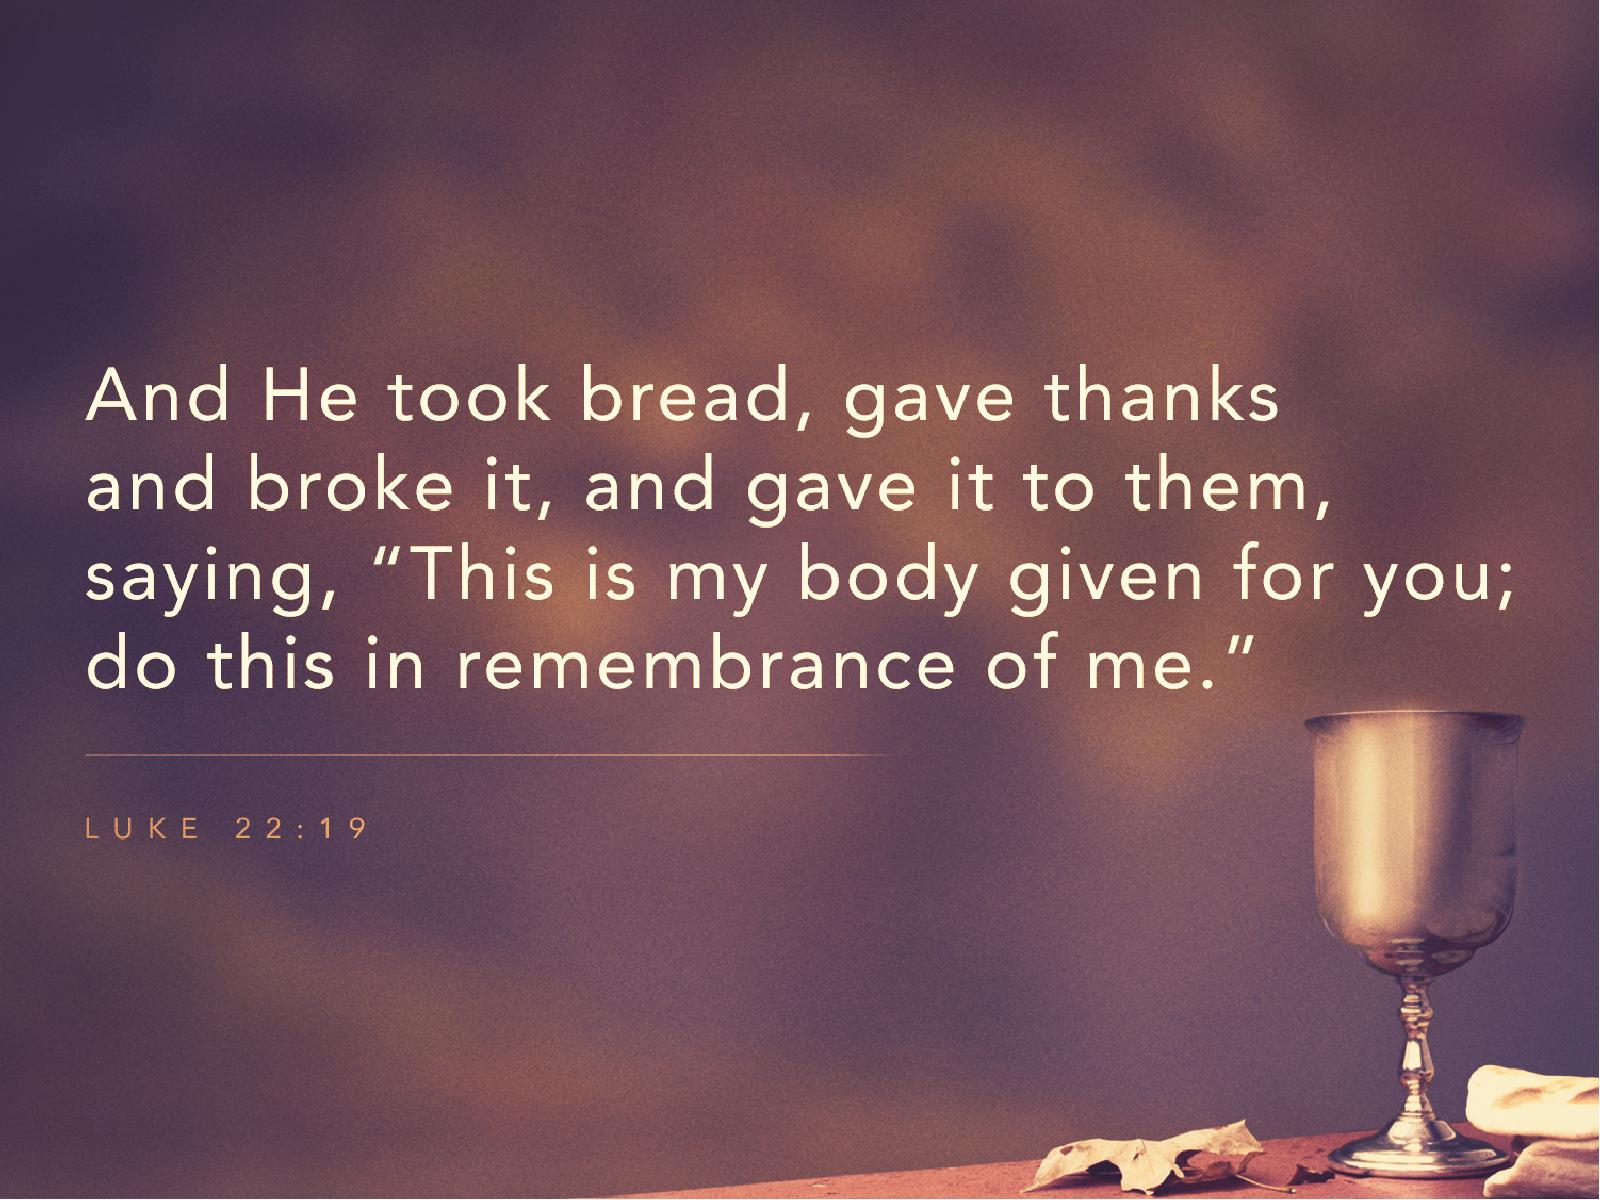 Communion – The Lord's Supper